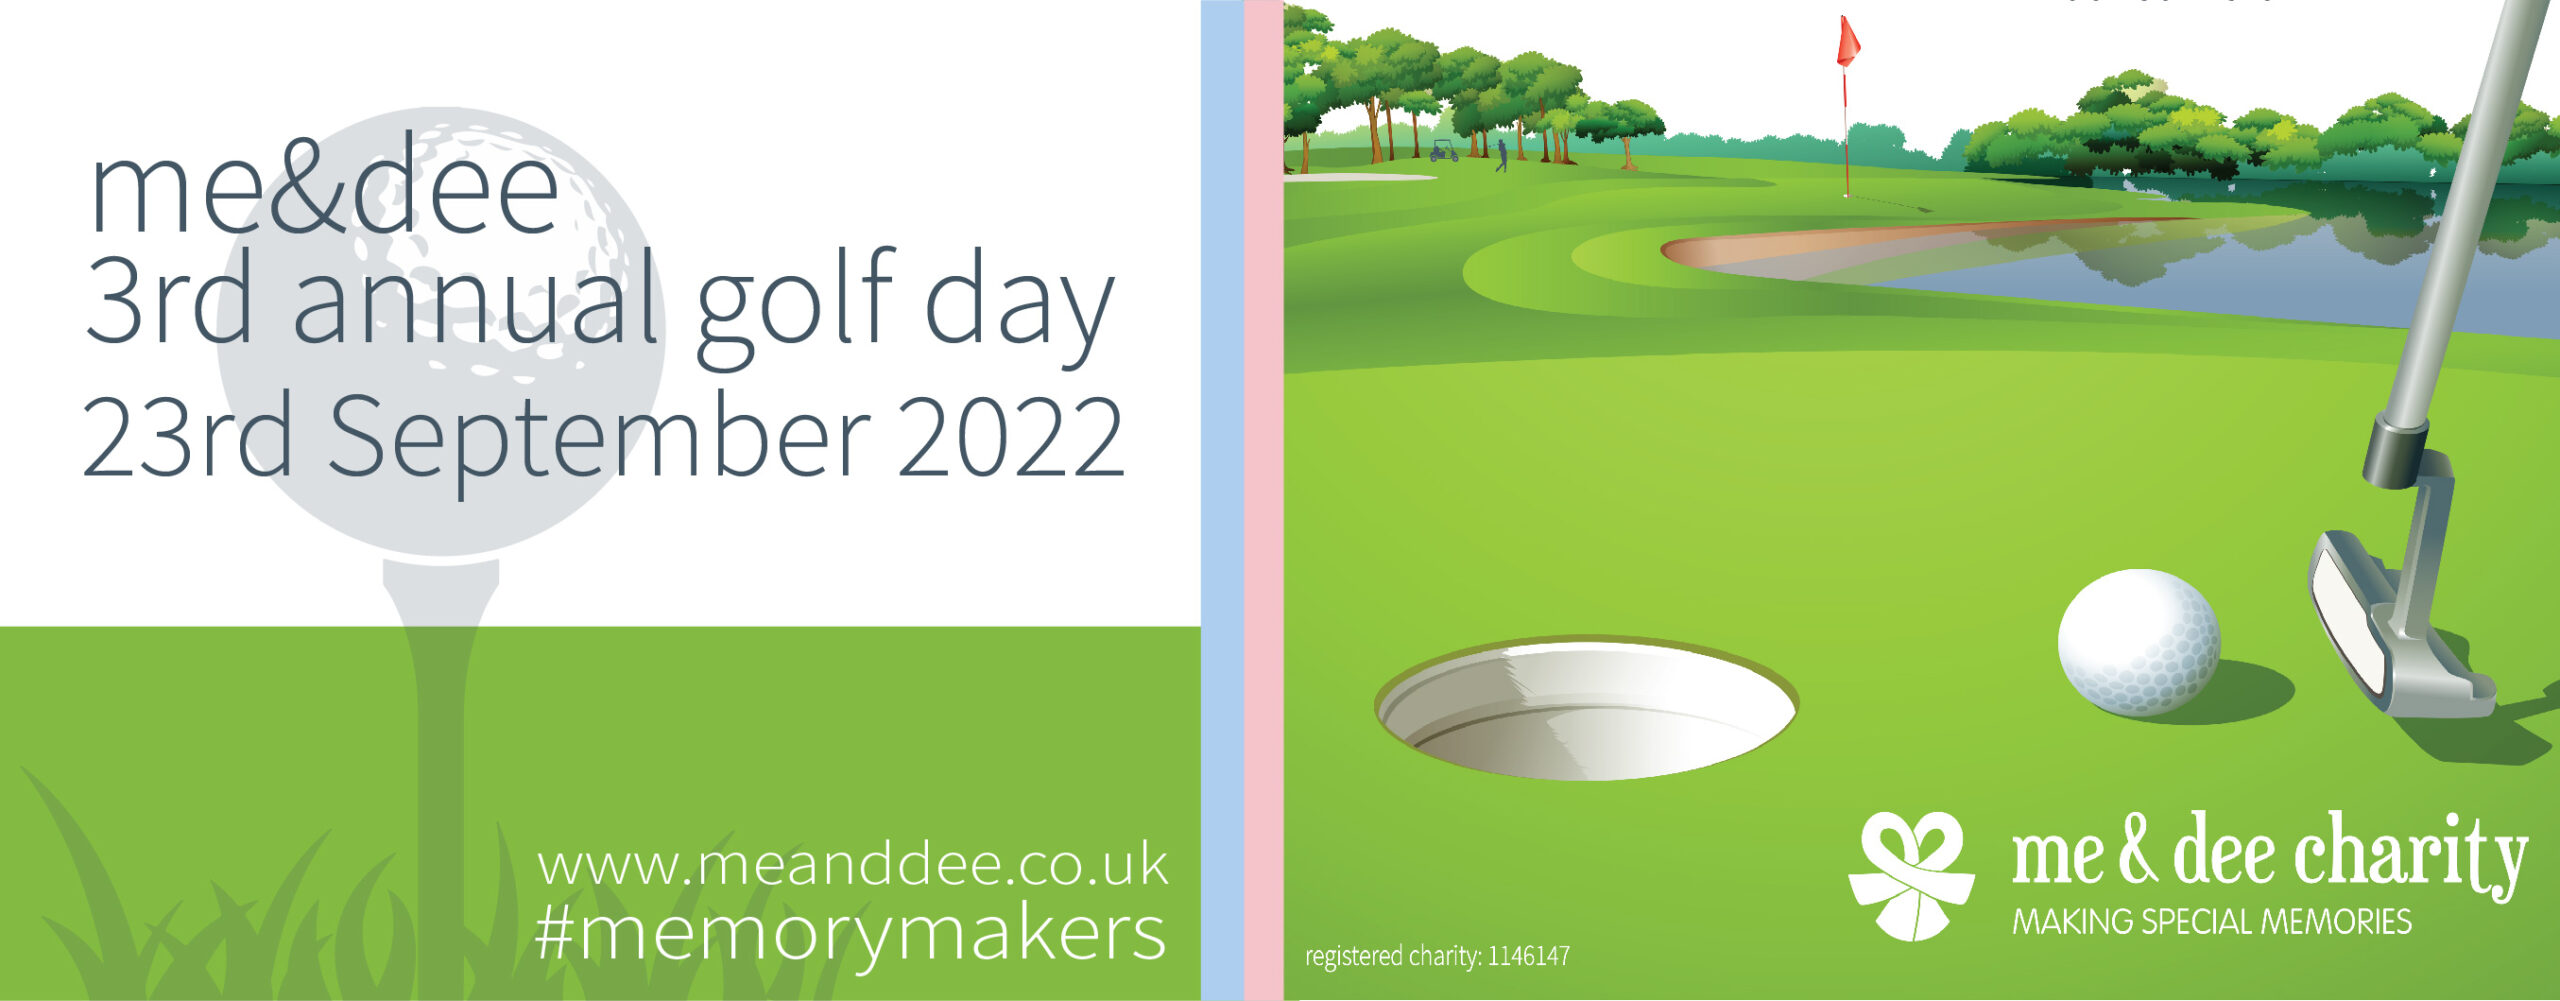 2022 Charity Golf Day